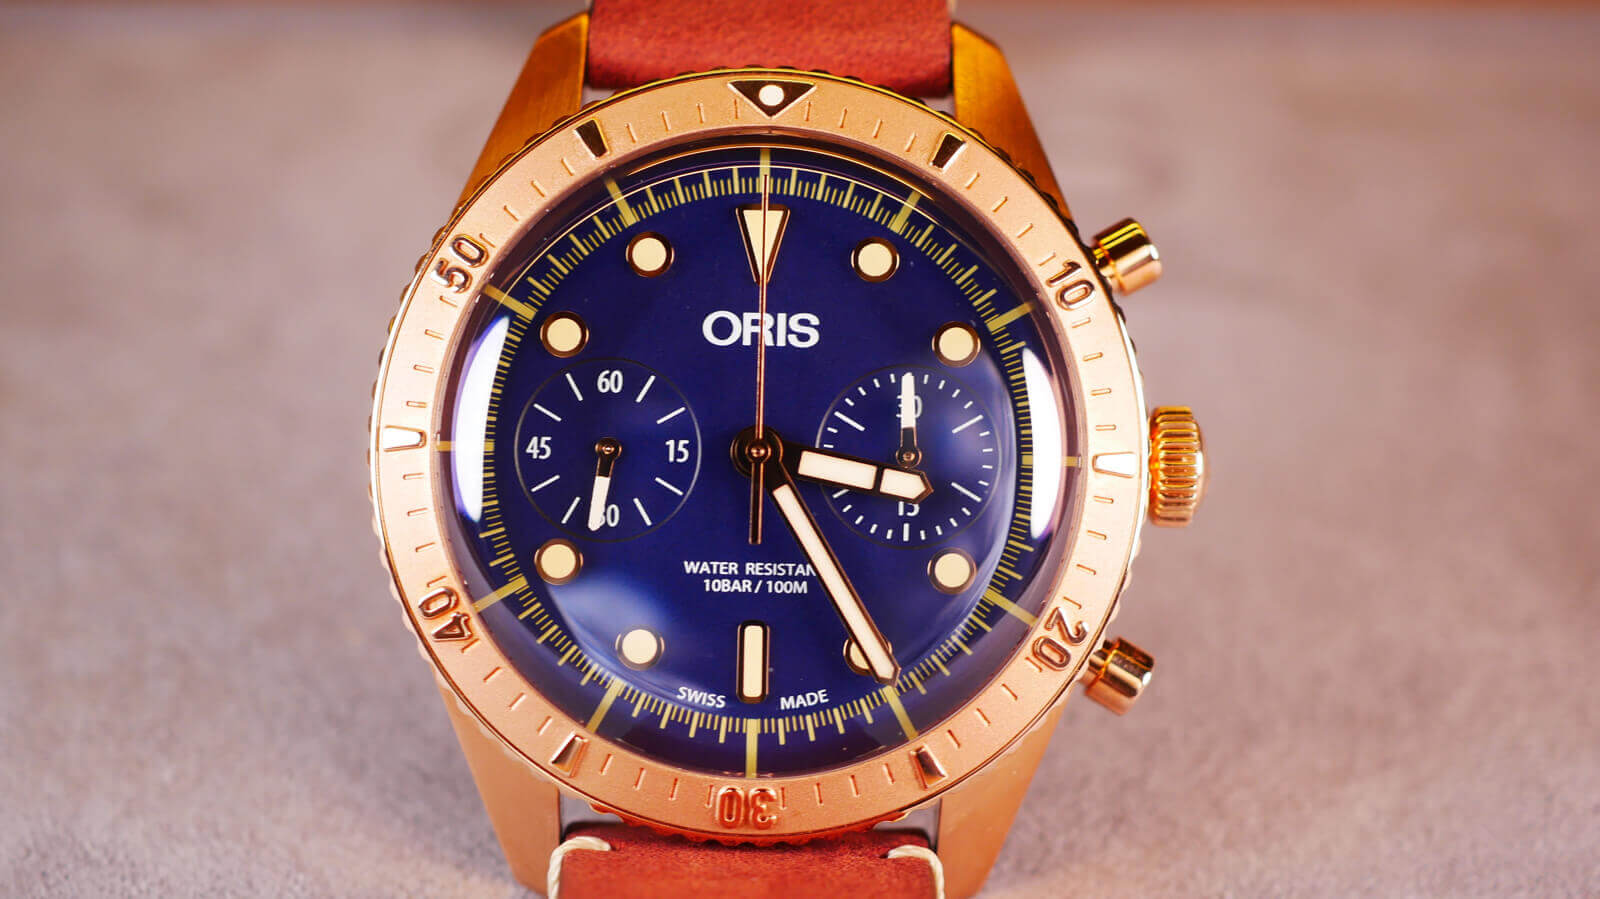 Oris Carl Brashear Chronograph Limited Edition - watch featuring bronze case and Oris Calibre 771 movement